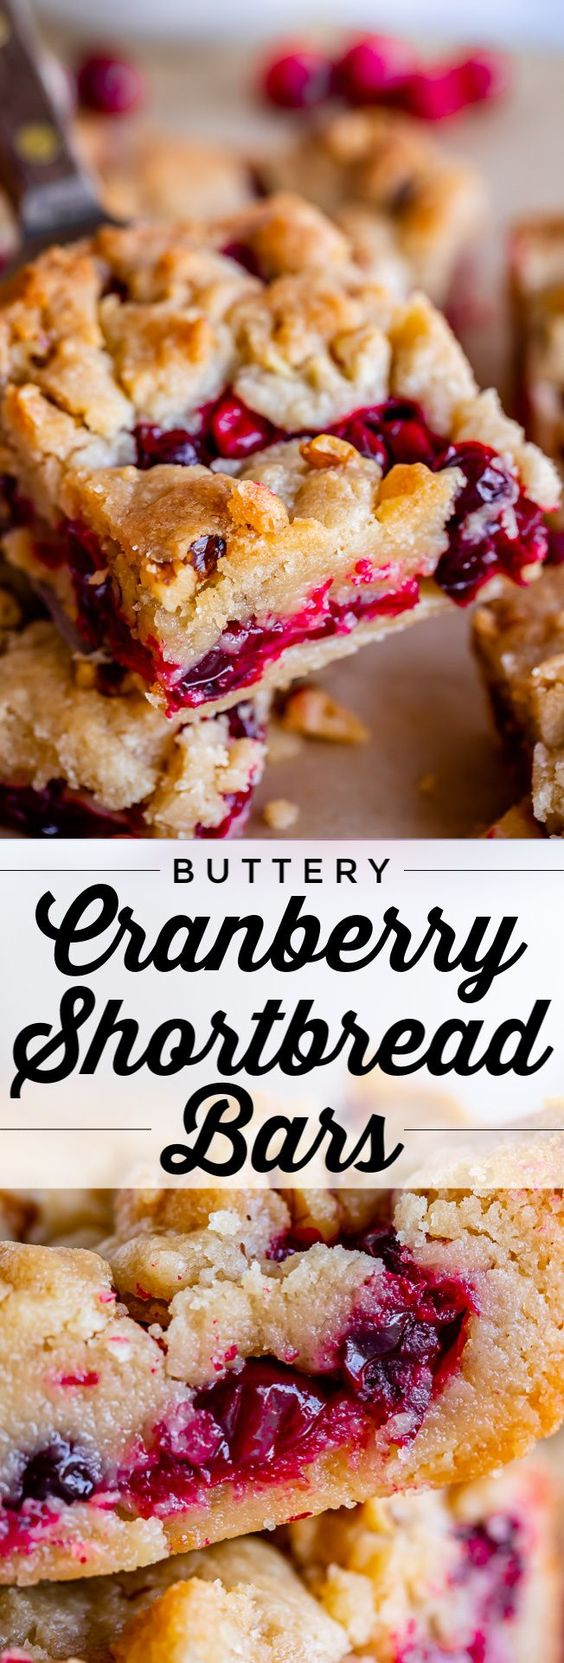 Cranberry Shortbread Bars from The Food Charlatan. Fresh cranberries sparkle between two layers of the butteriest shortbread you've ever had! These cranberry bars are so easy to put together; the recipe is foolproof. They are sturdy enough to be eaten with your hands, but are also amazing warmed up and topped with a scoop of ice cream! #cranberry #bars #dessert #Thanksgiving #Christmas #easy #recipe #recipe #fresh #shortbread #butter